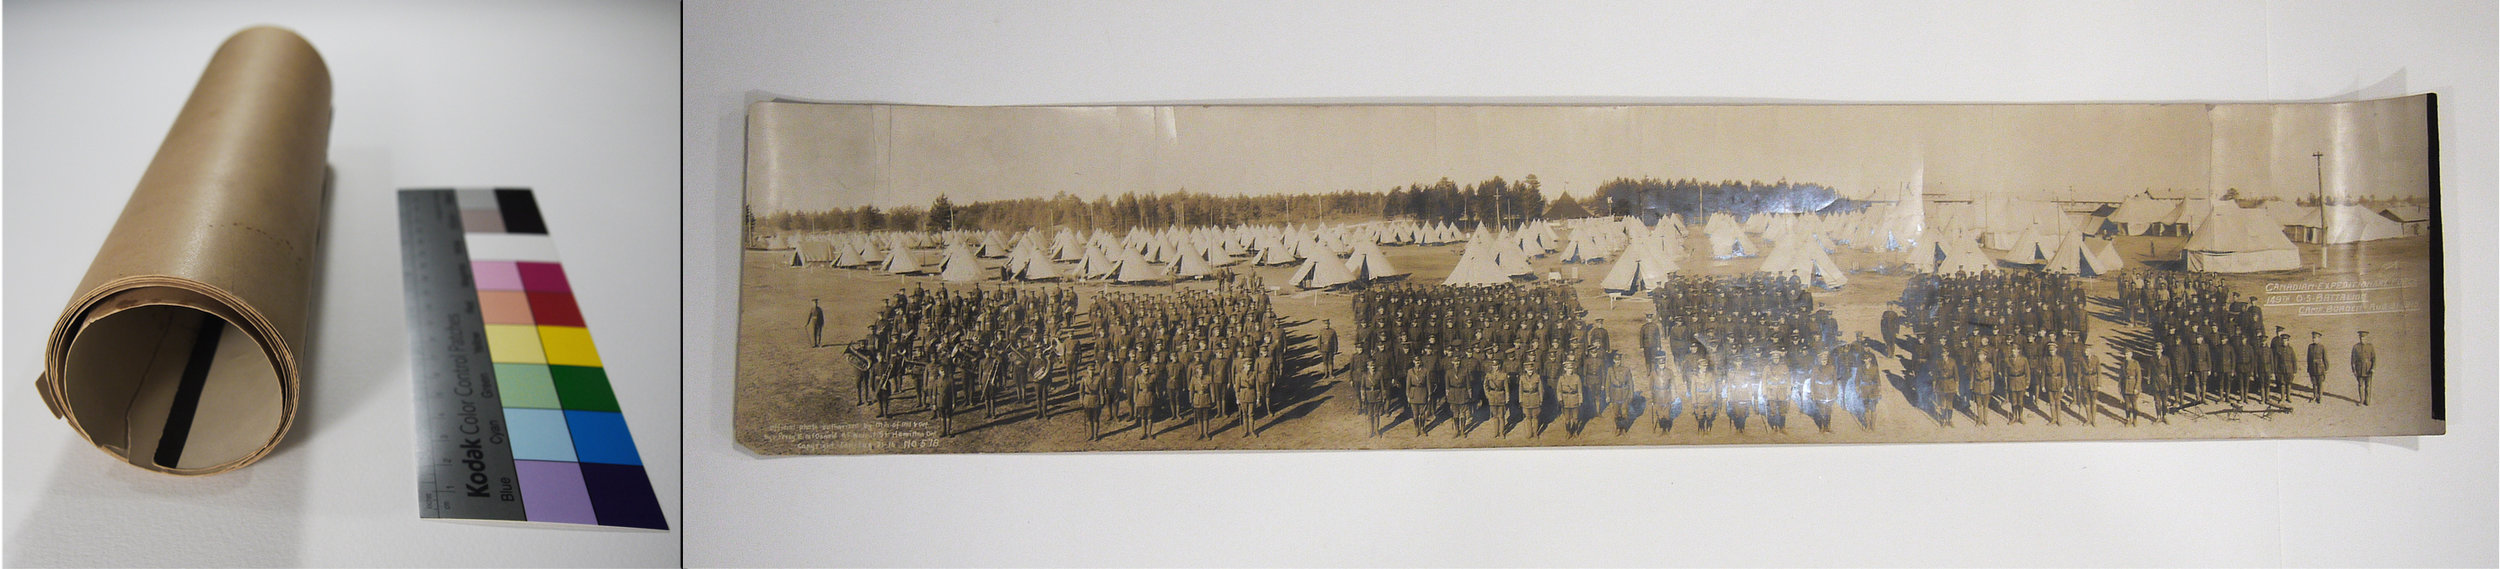 Lambton 149 Battalion, panorama photograph, before and after conservation treatment.